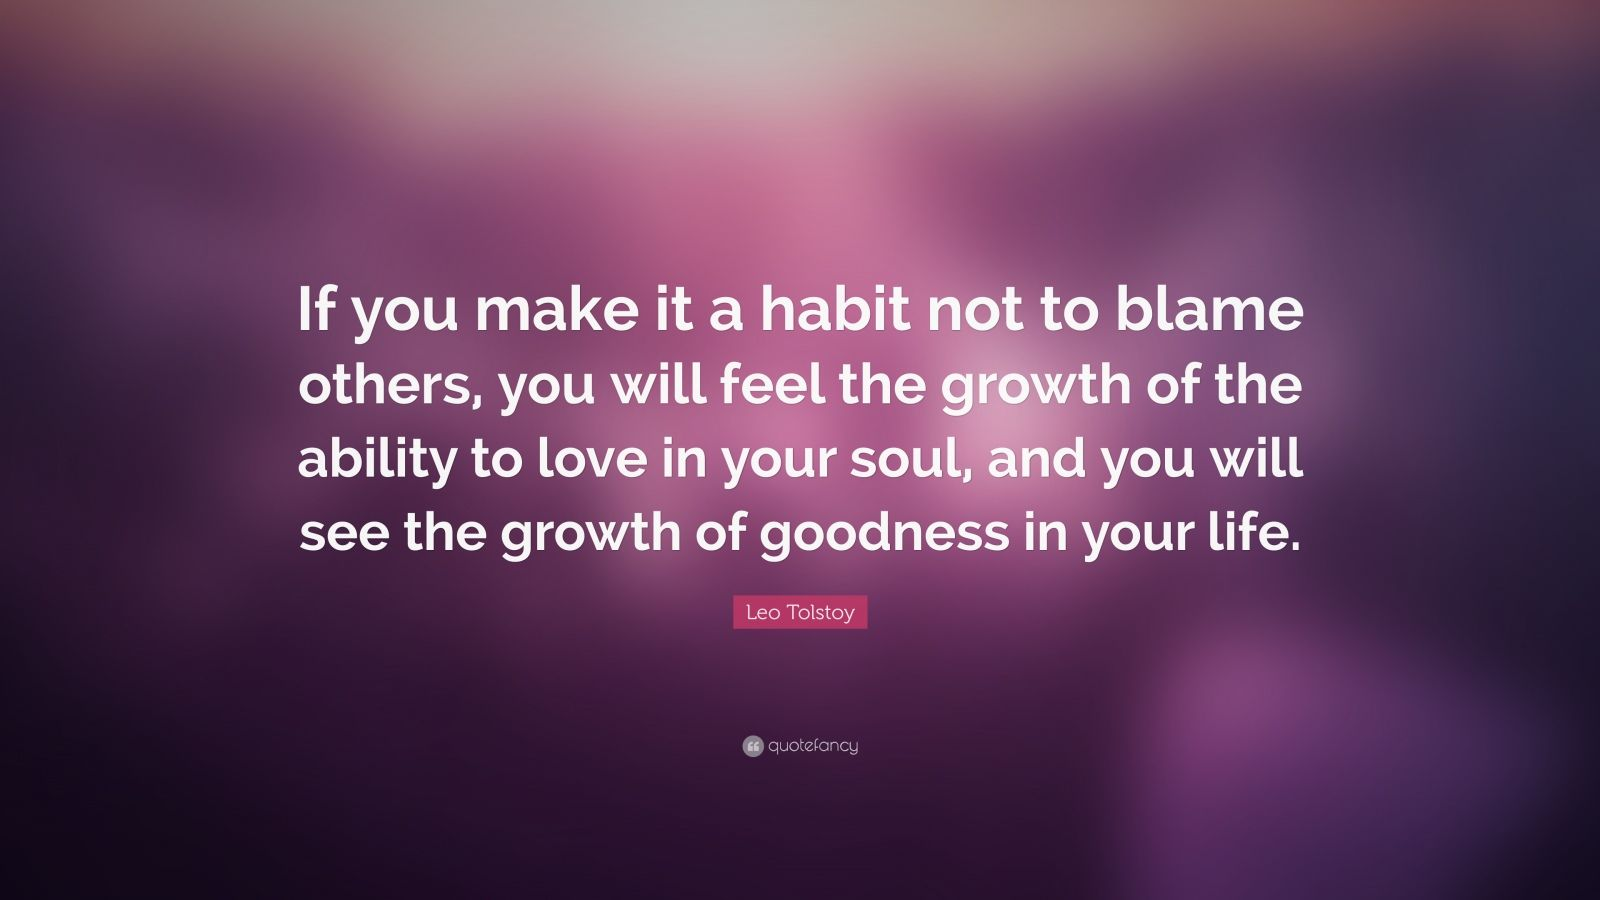 "Leo Tolstoy Quote: ""If you make it a habit not to blame others, you will feel the growth of the ability to love in your soul, and you will see the growth of goodness in your life."""